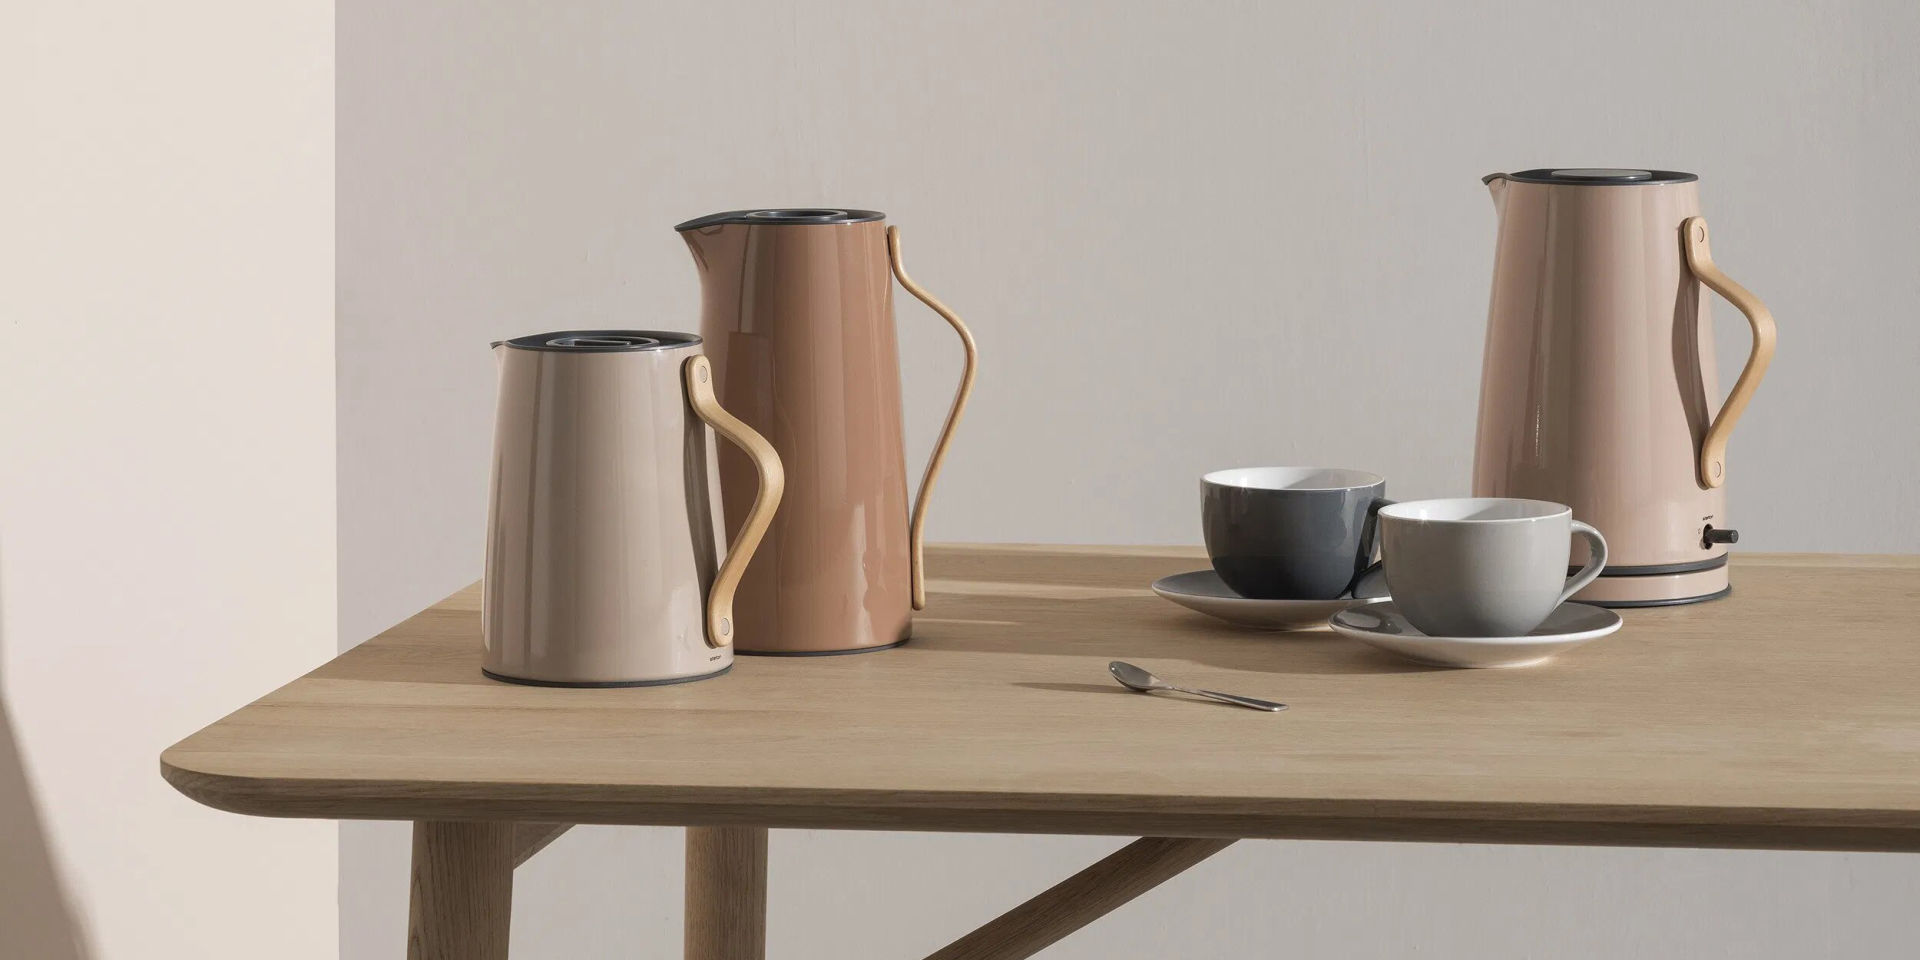 STELTON Danish Modern 2.0 - Emma electric kettle #3